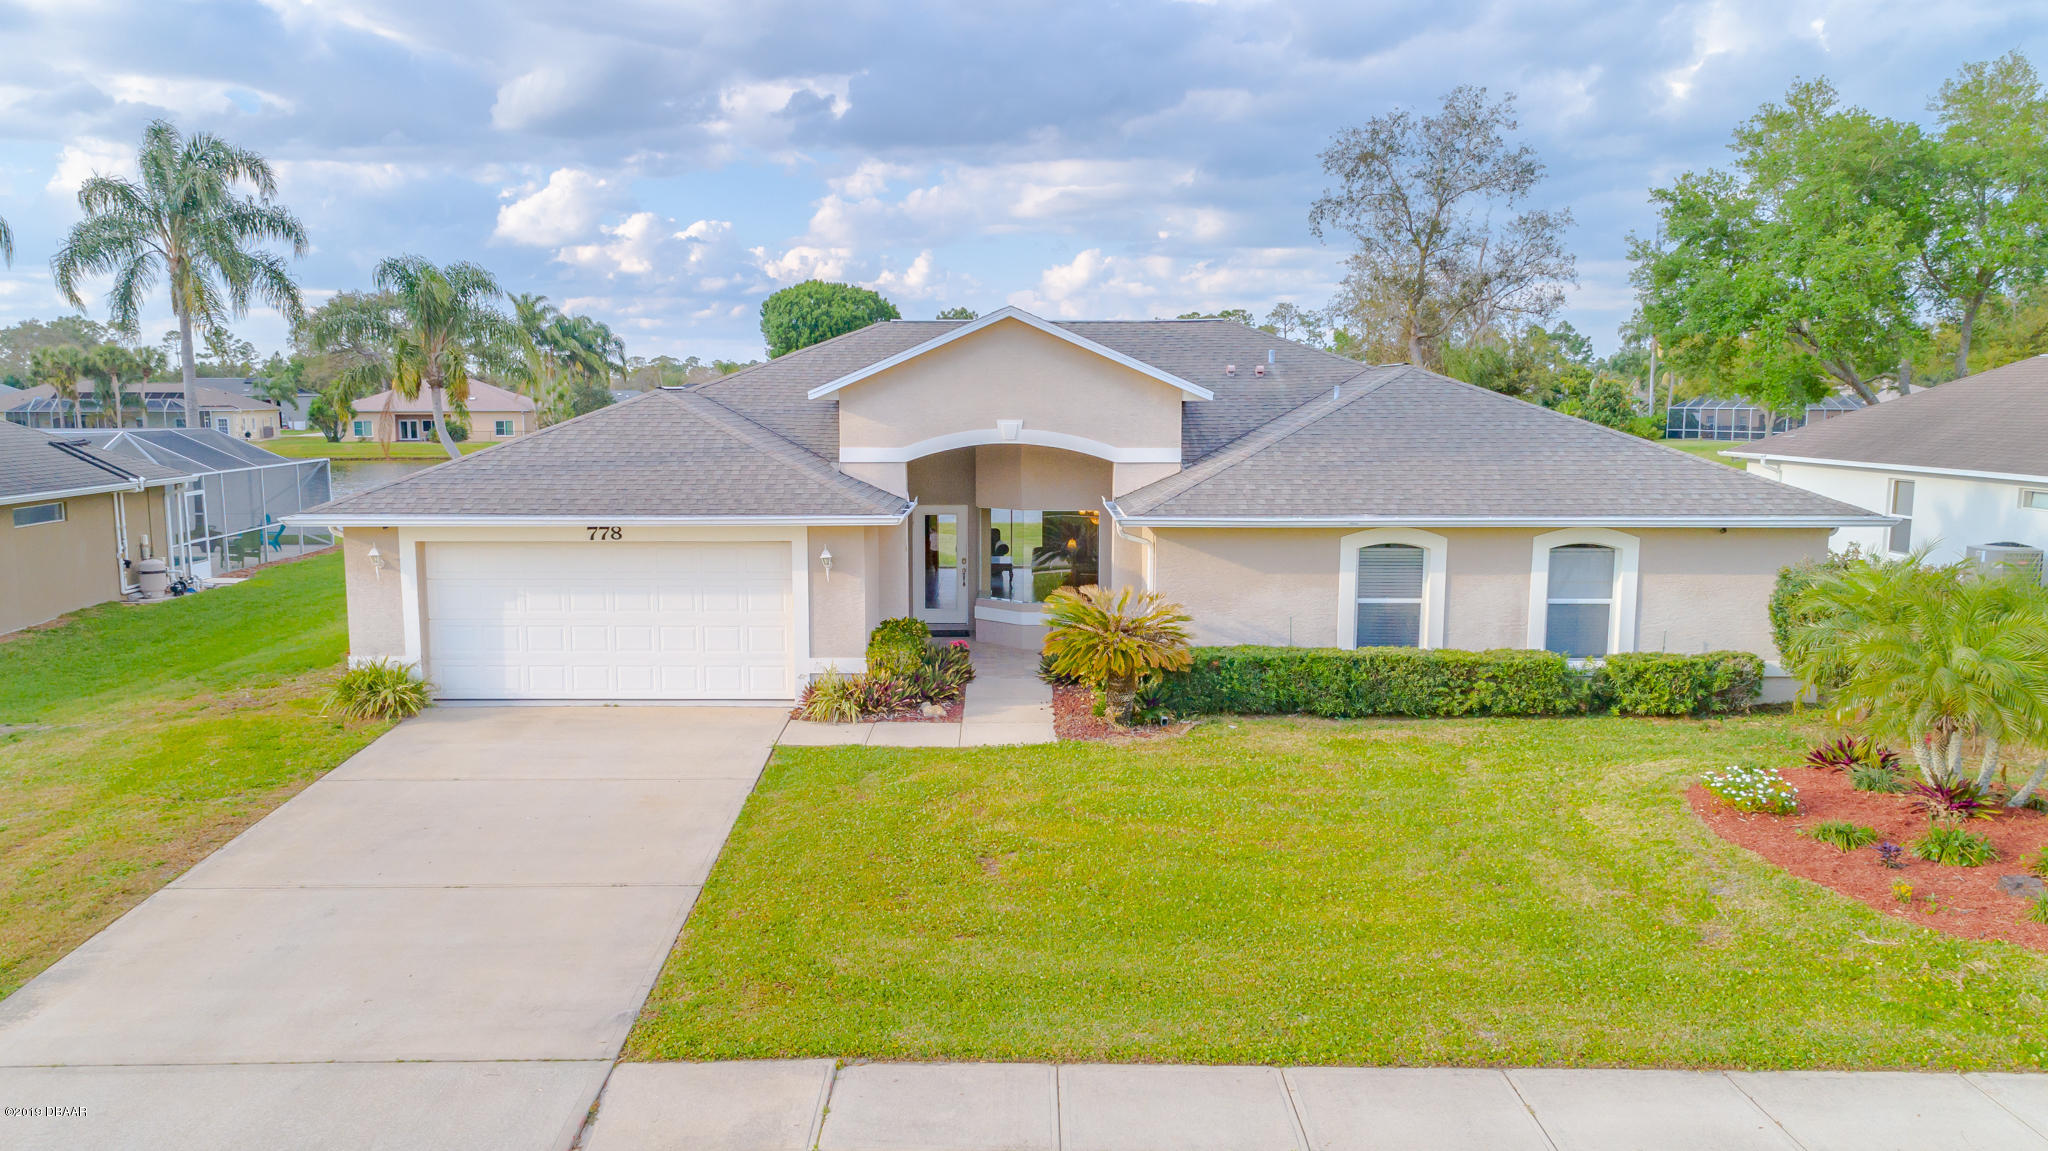 Photo of 778 Sterling Chase Drive, Port Orange, FL 32128